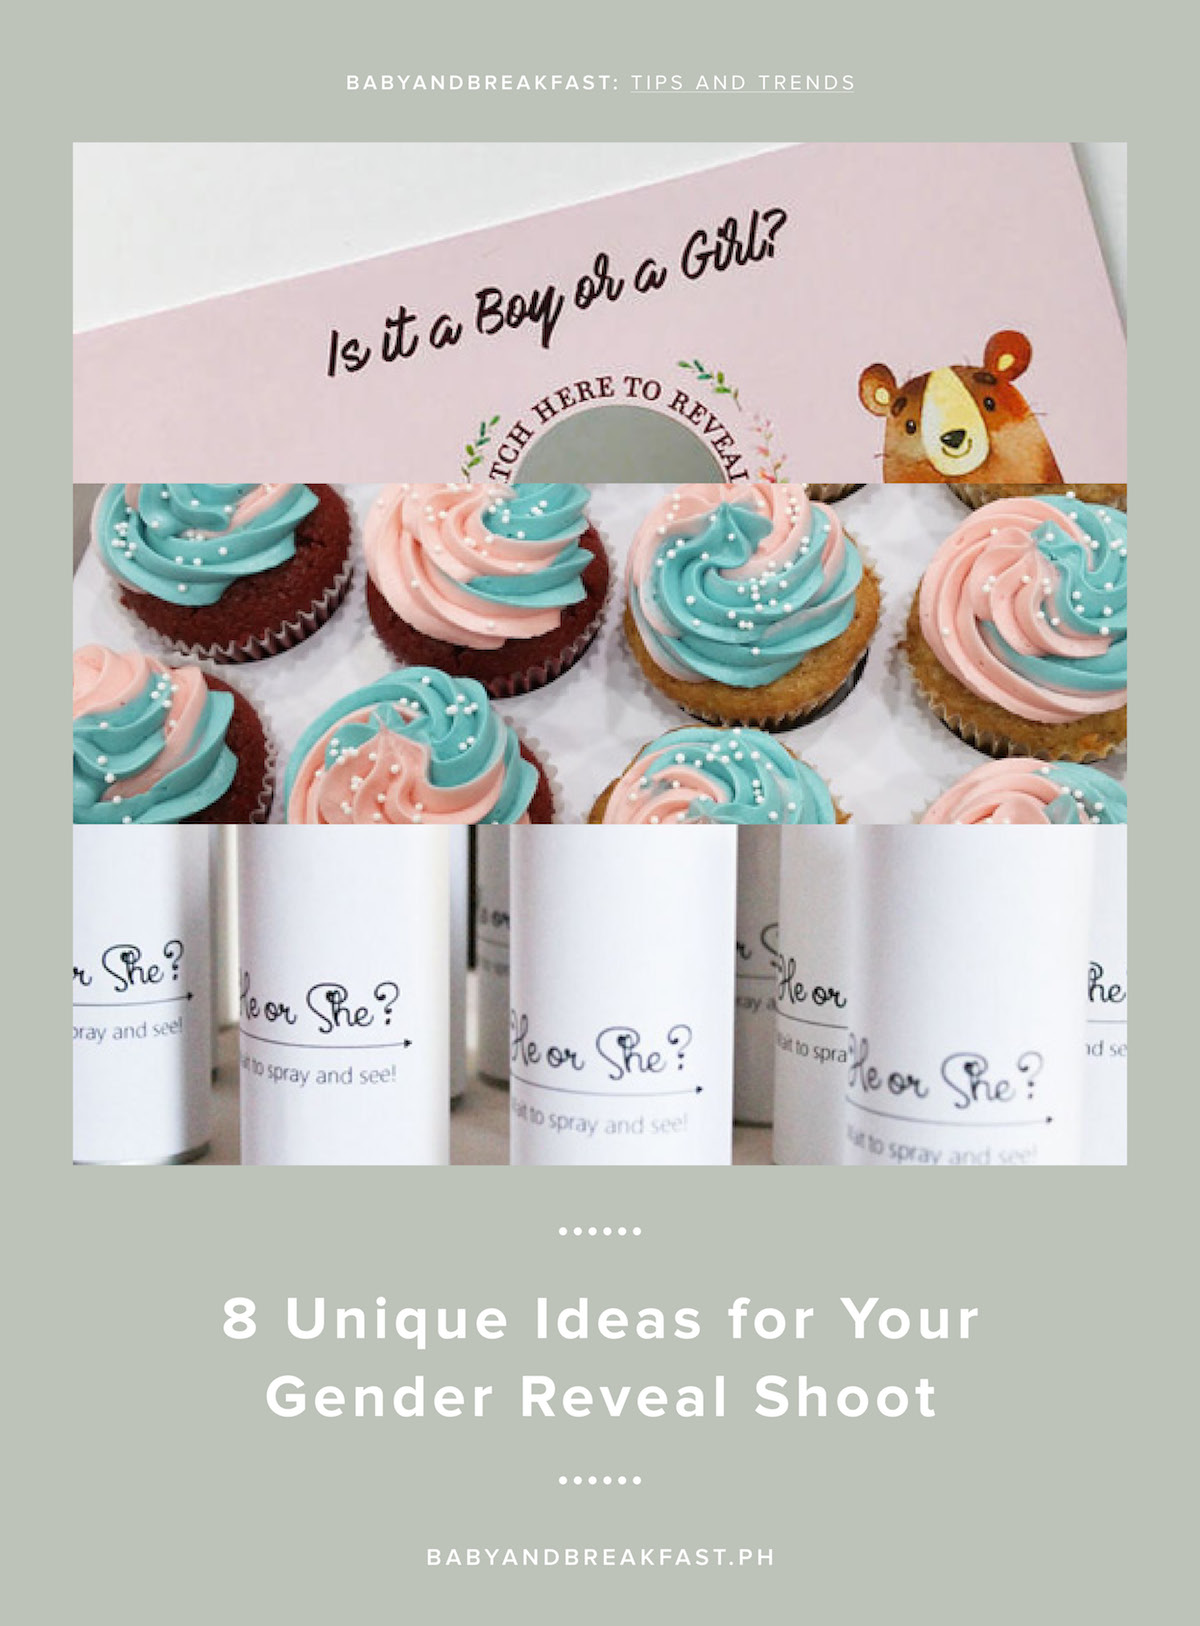 Baby and Breakfast: Tips and Trends 8 Unique Ideas for Your Gender Reveal Shoot